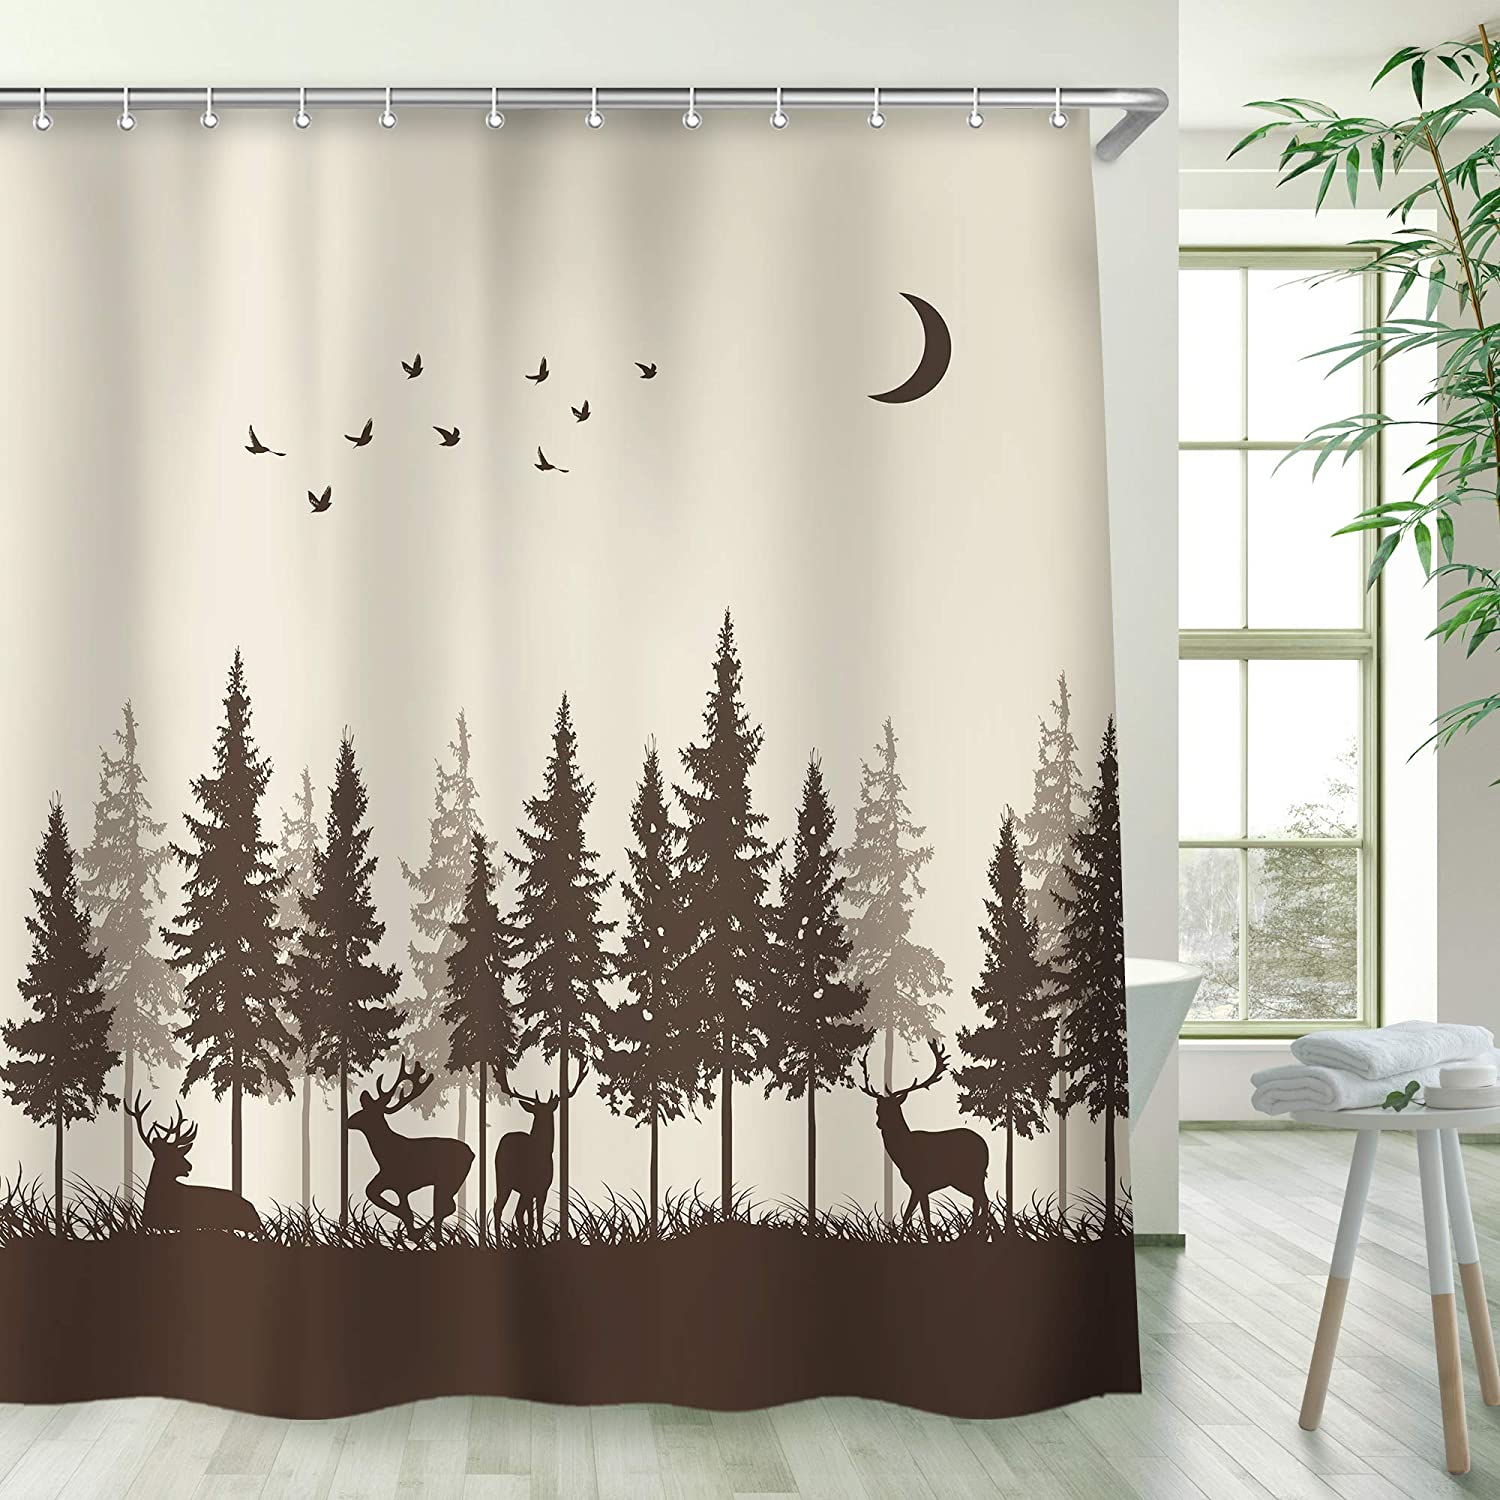 Stacy Fay Deer in The Forest Shower Curtain Cabin with 12 Hooks Fog Bird Mountain Hunting Theme (Brown